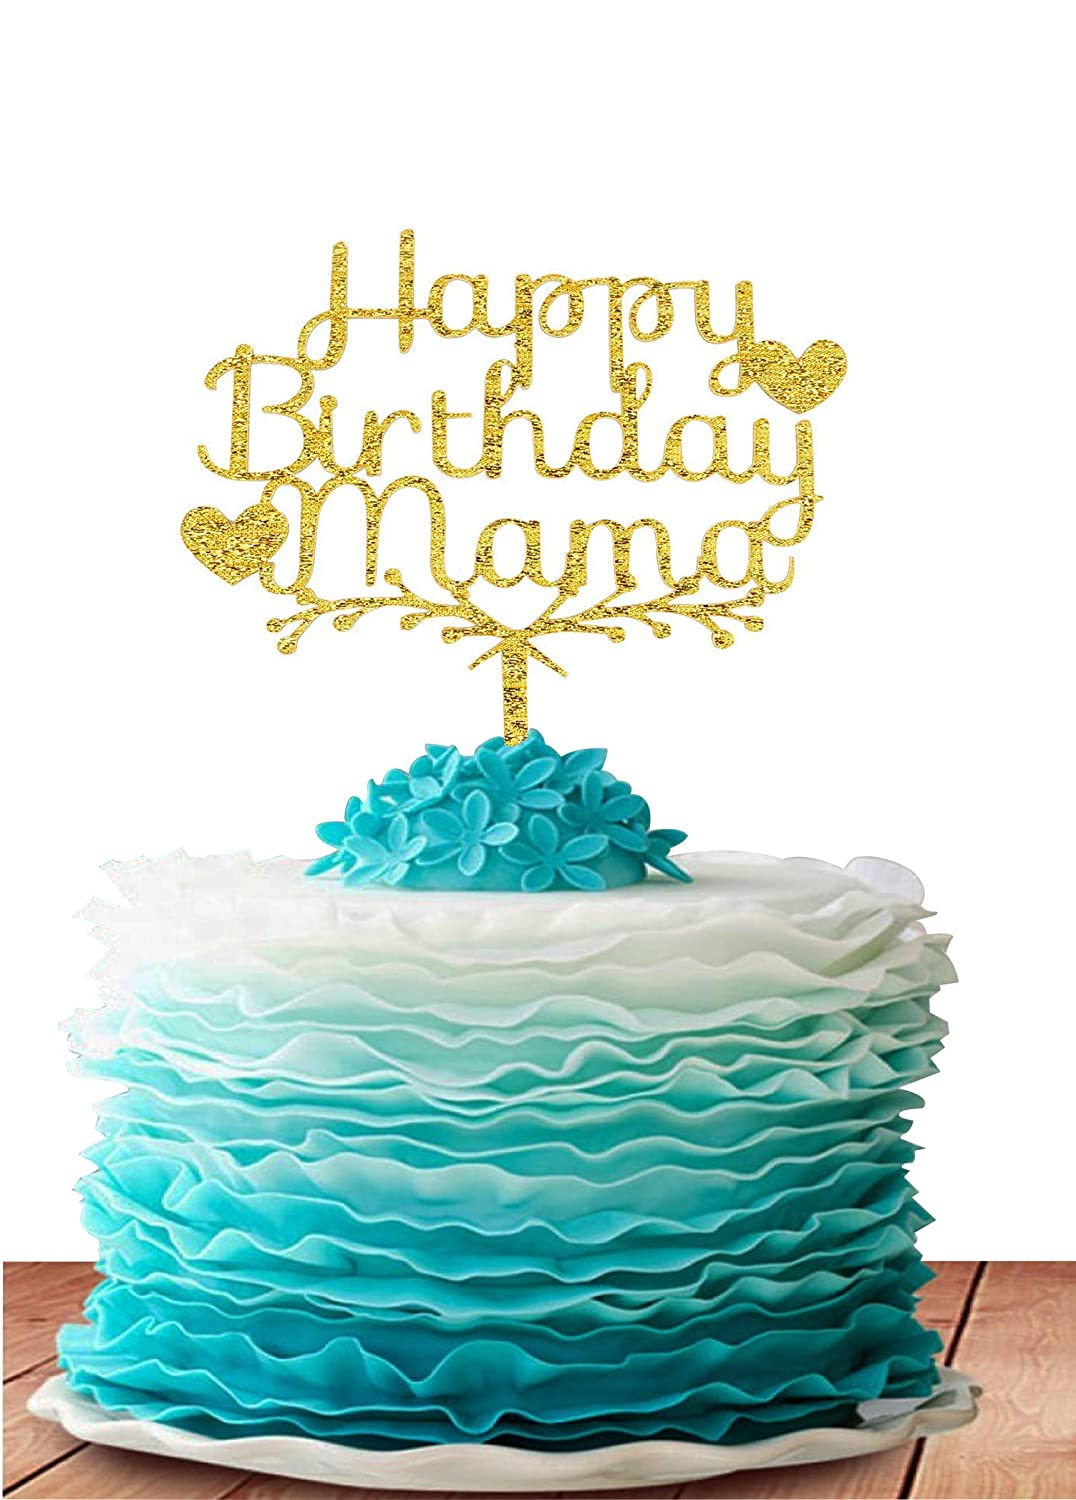 GrantParty Happy Birthday Mama Acrylic Heart Cake Topper -Happy Birthday for Mother Cake Supplies Decorations (Gold)